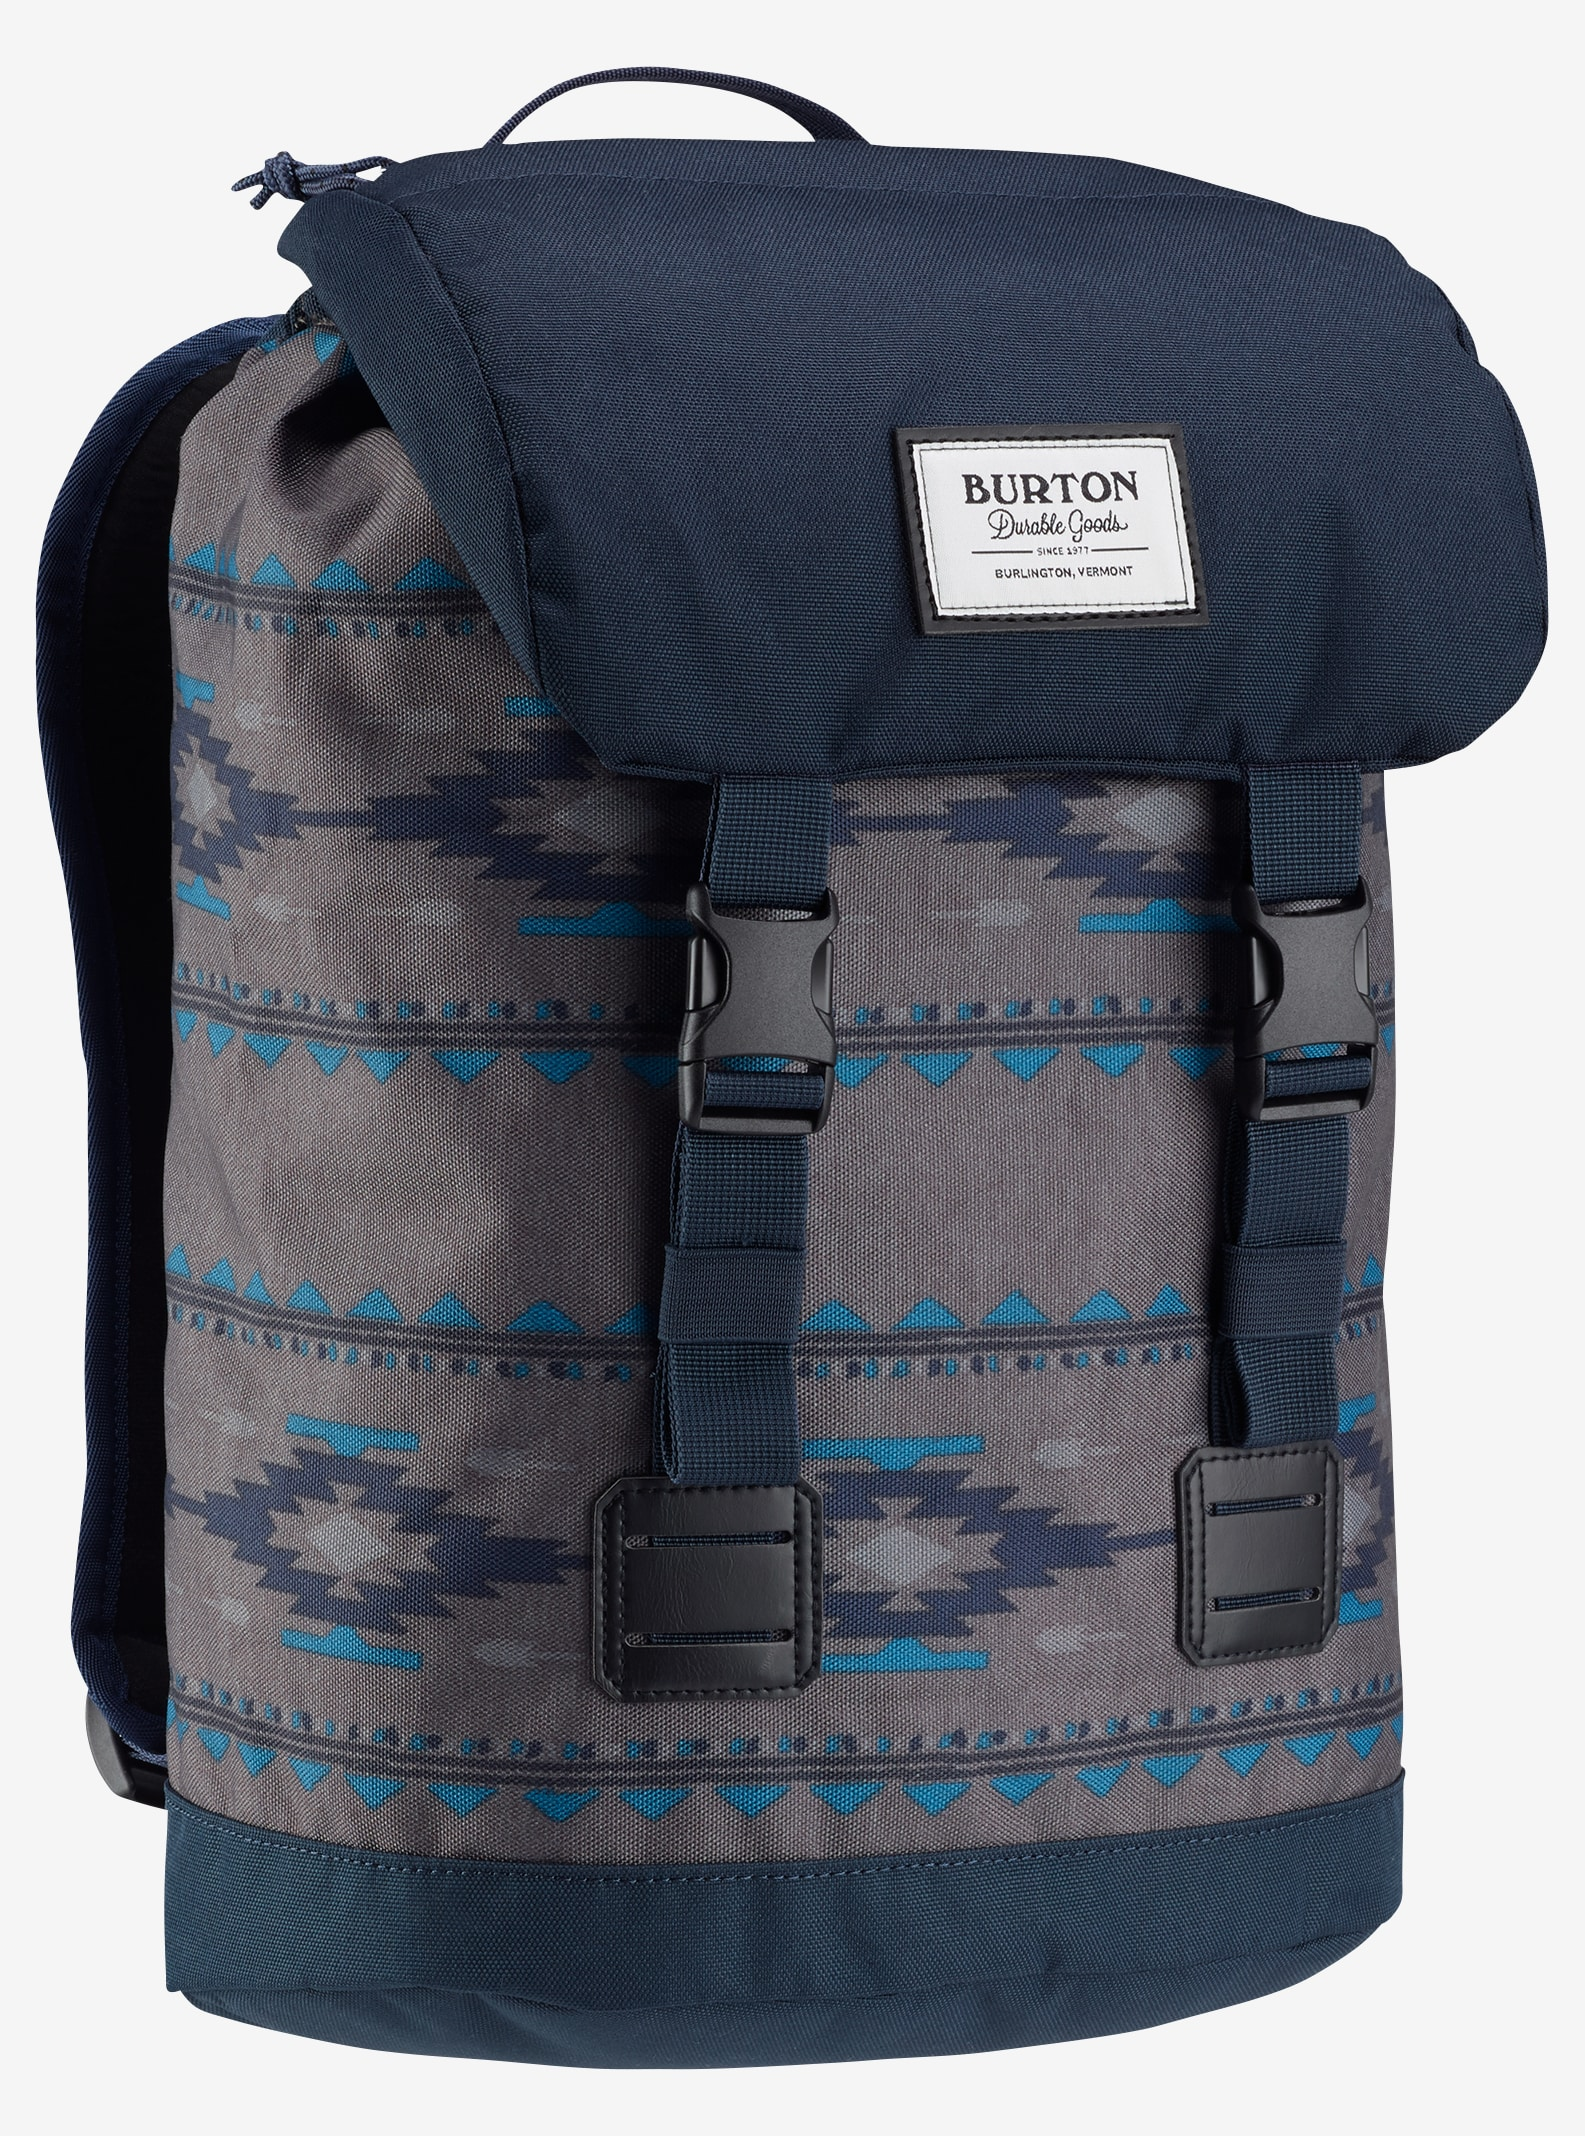 Burton Kids' Tinder Backpack shown in Faded Saddle Stripe Print